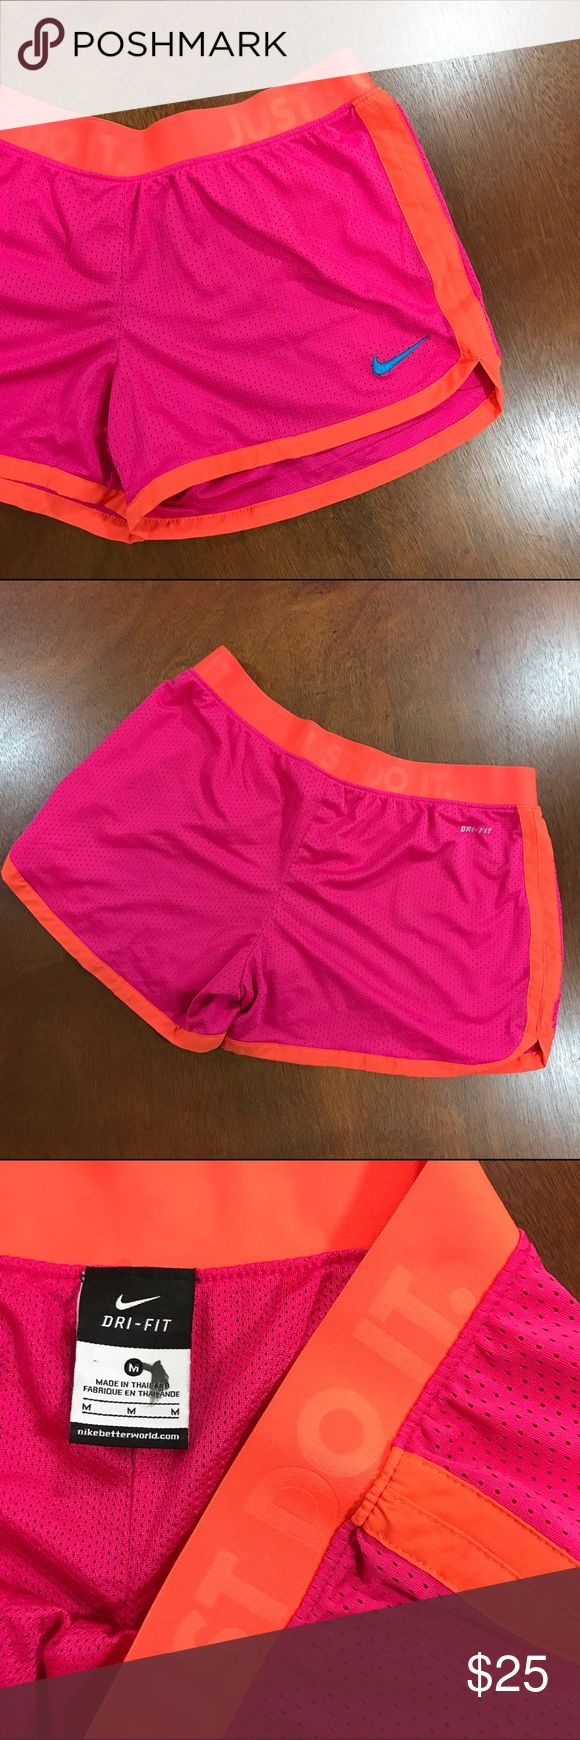 NIKE Dri Fit Shorts Orange and pink Nike Dri Fit Shorts. Excellent condition. Nike Shorts